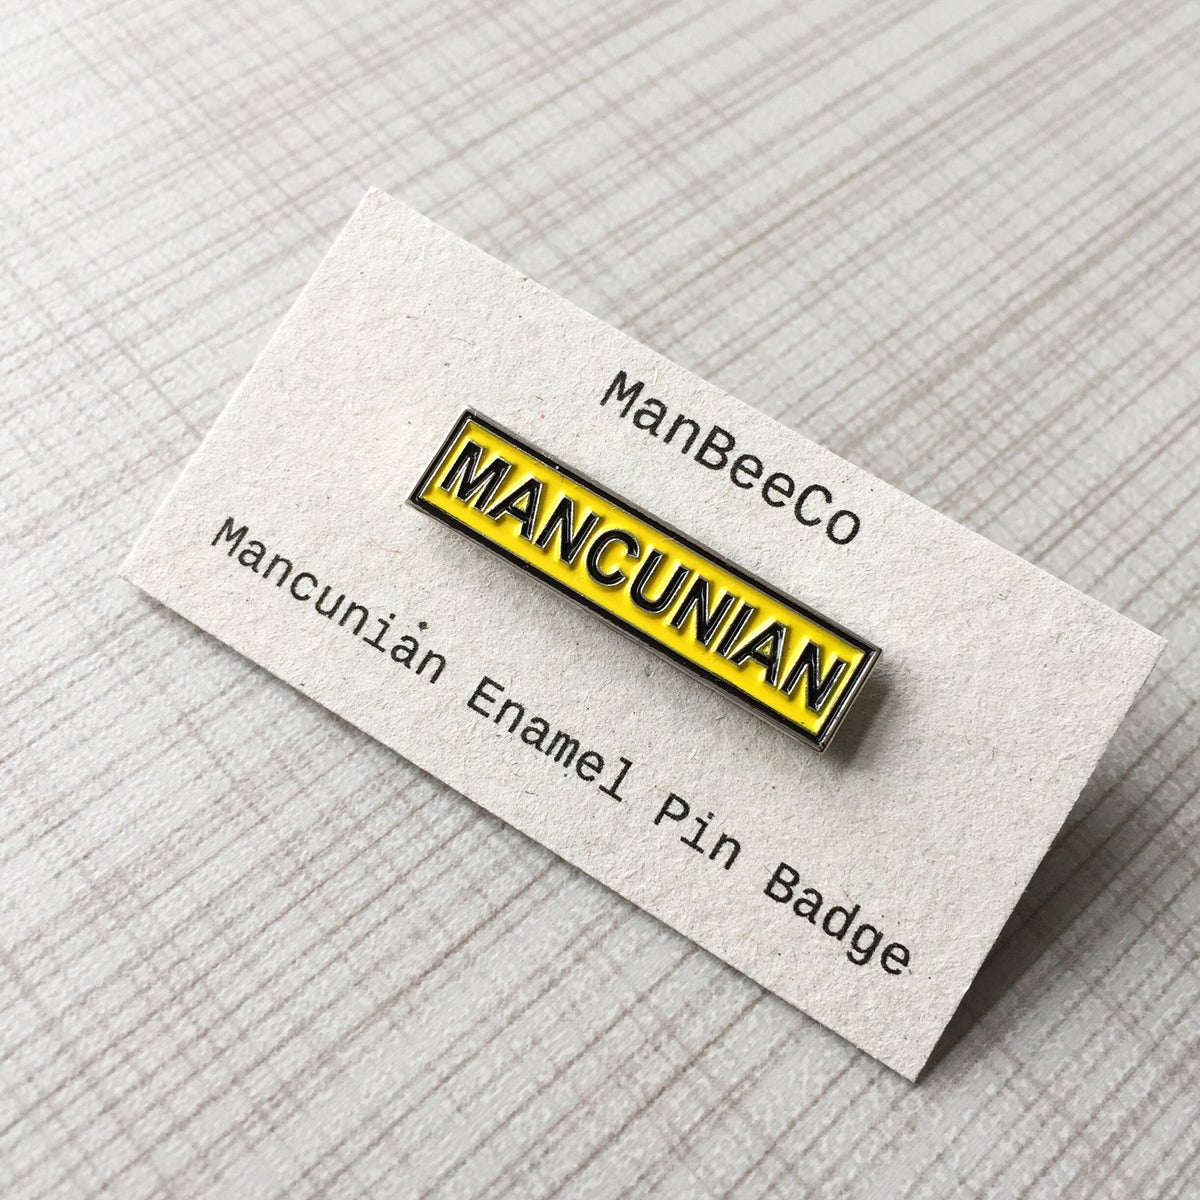 Image of Mancunian Enamel Pin Badge